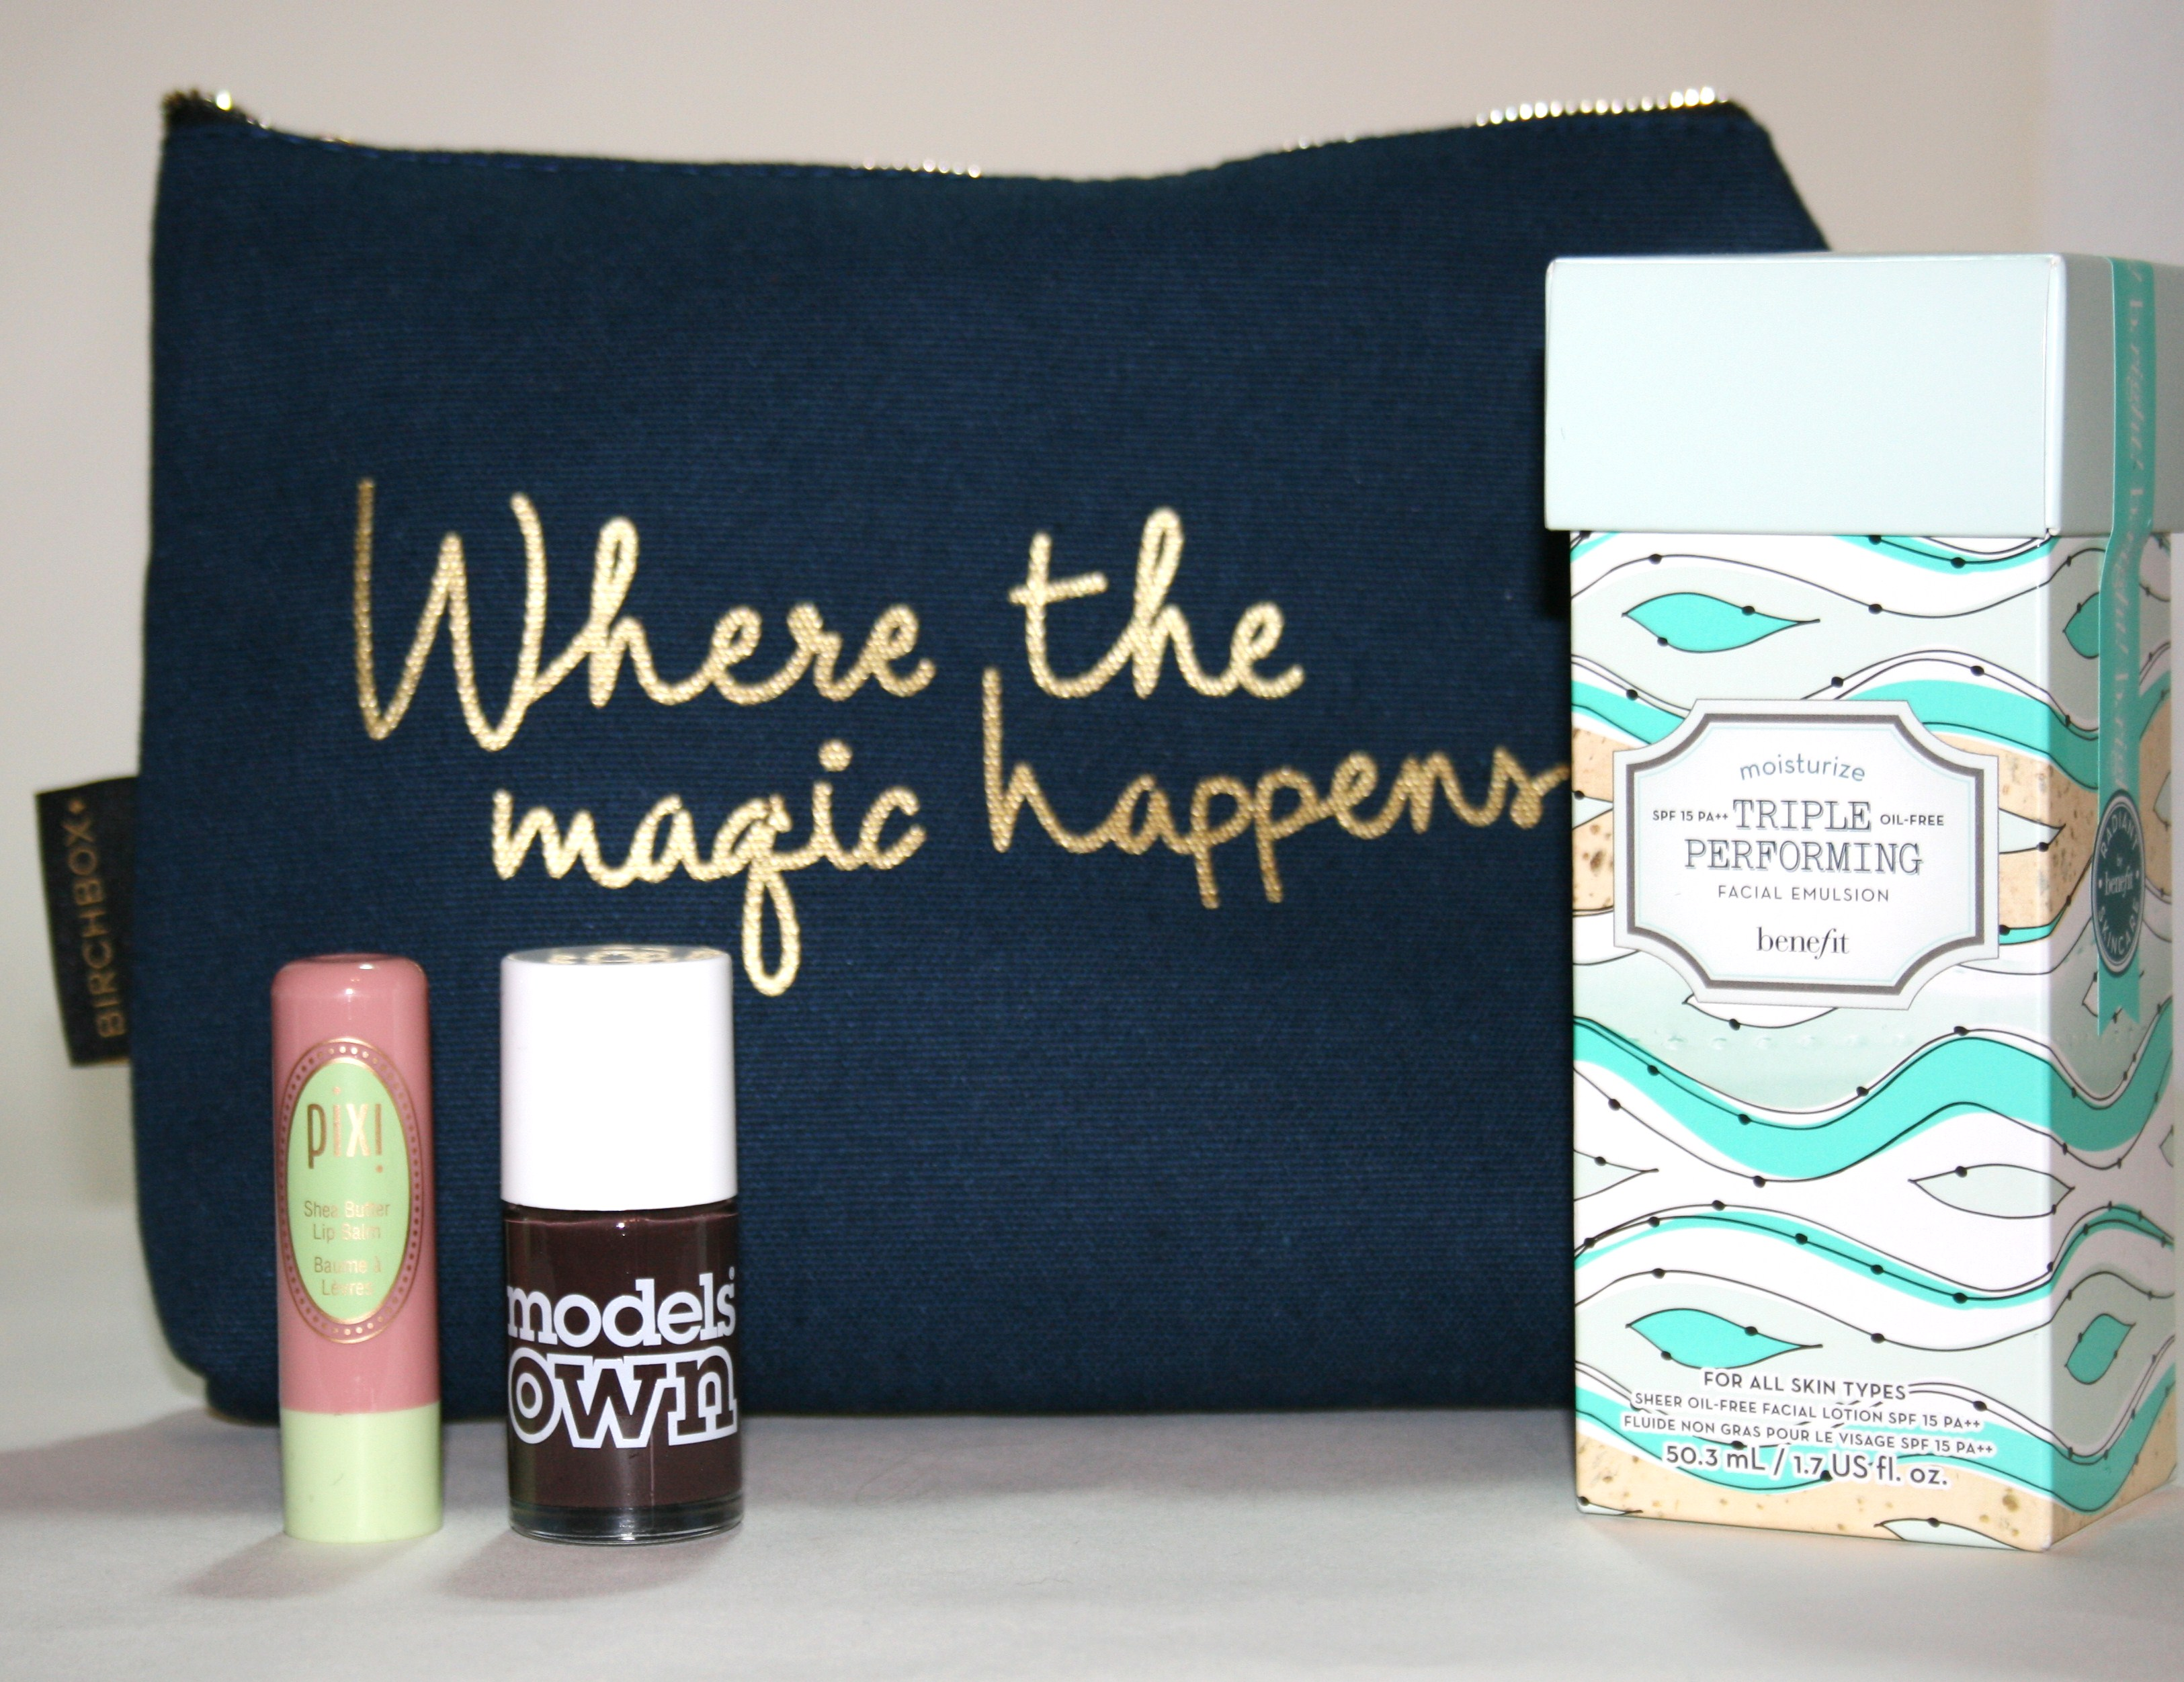 Last Minute Gift: Birchbox Subscription